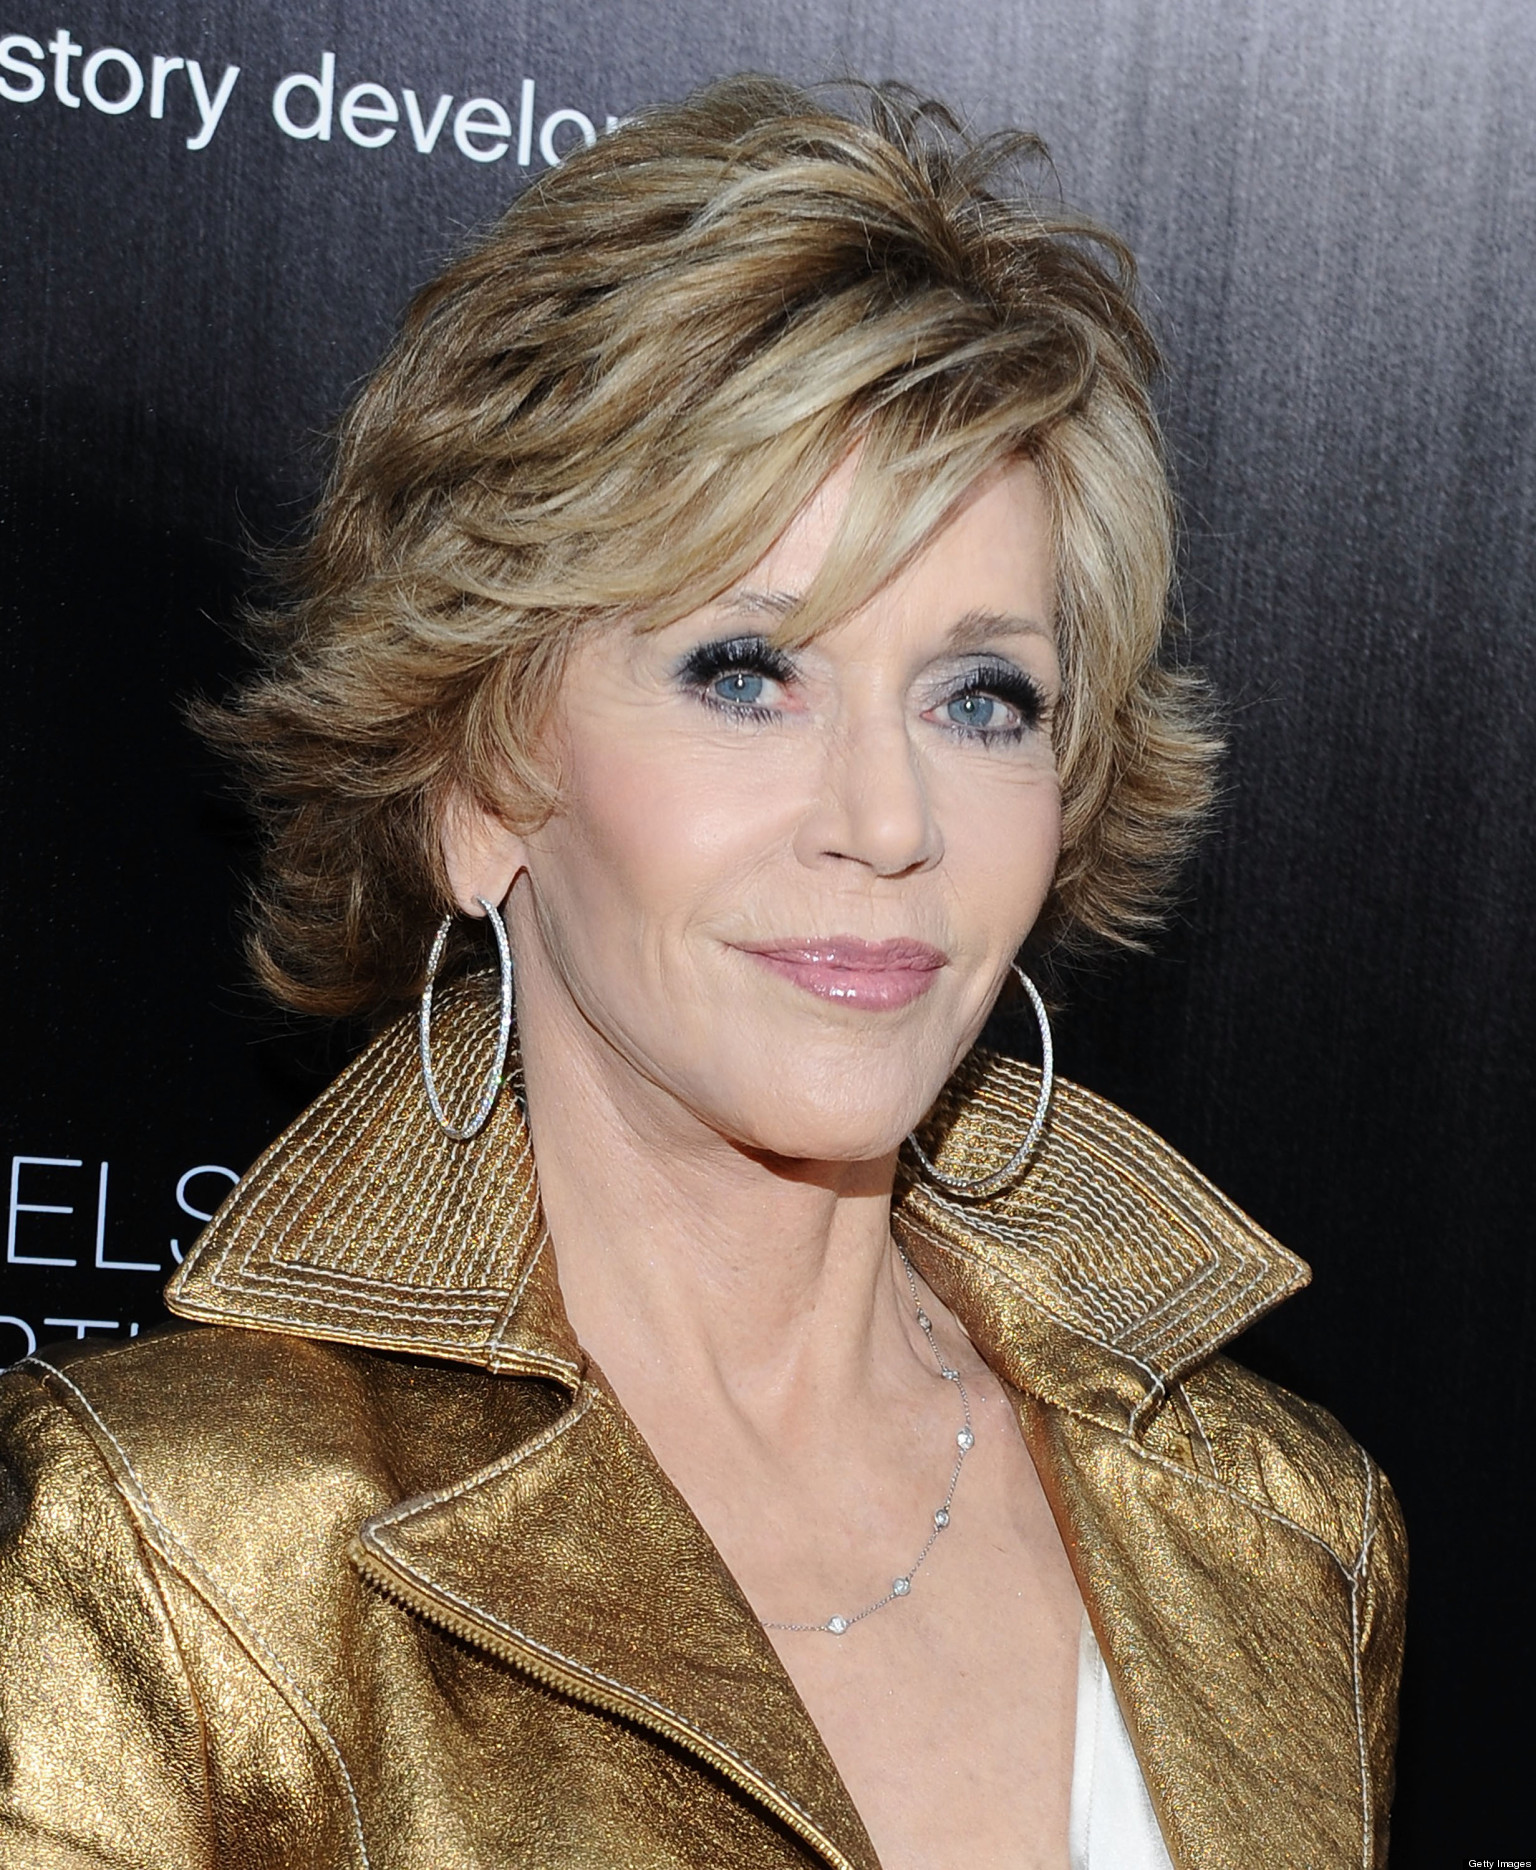 Jane Fonda Sells Hollywood House For 85 Million PHOTOS